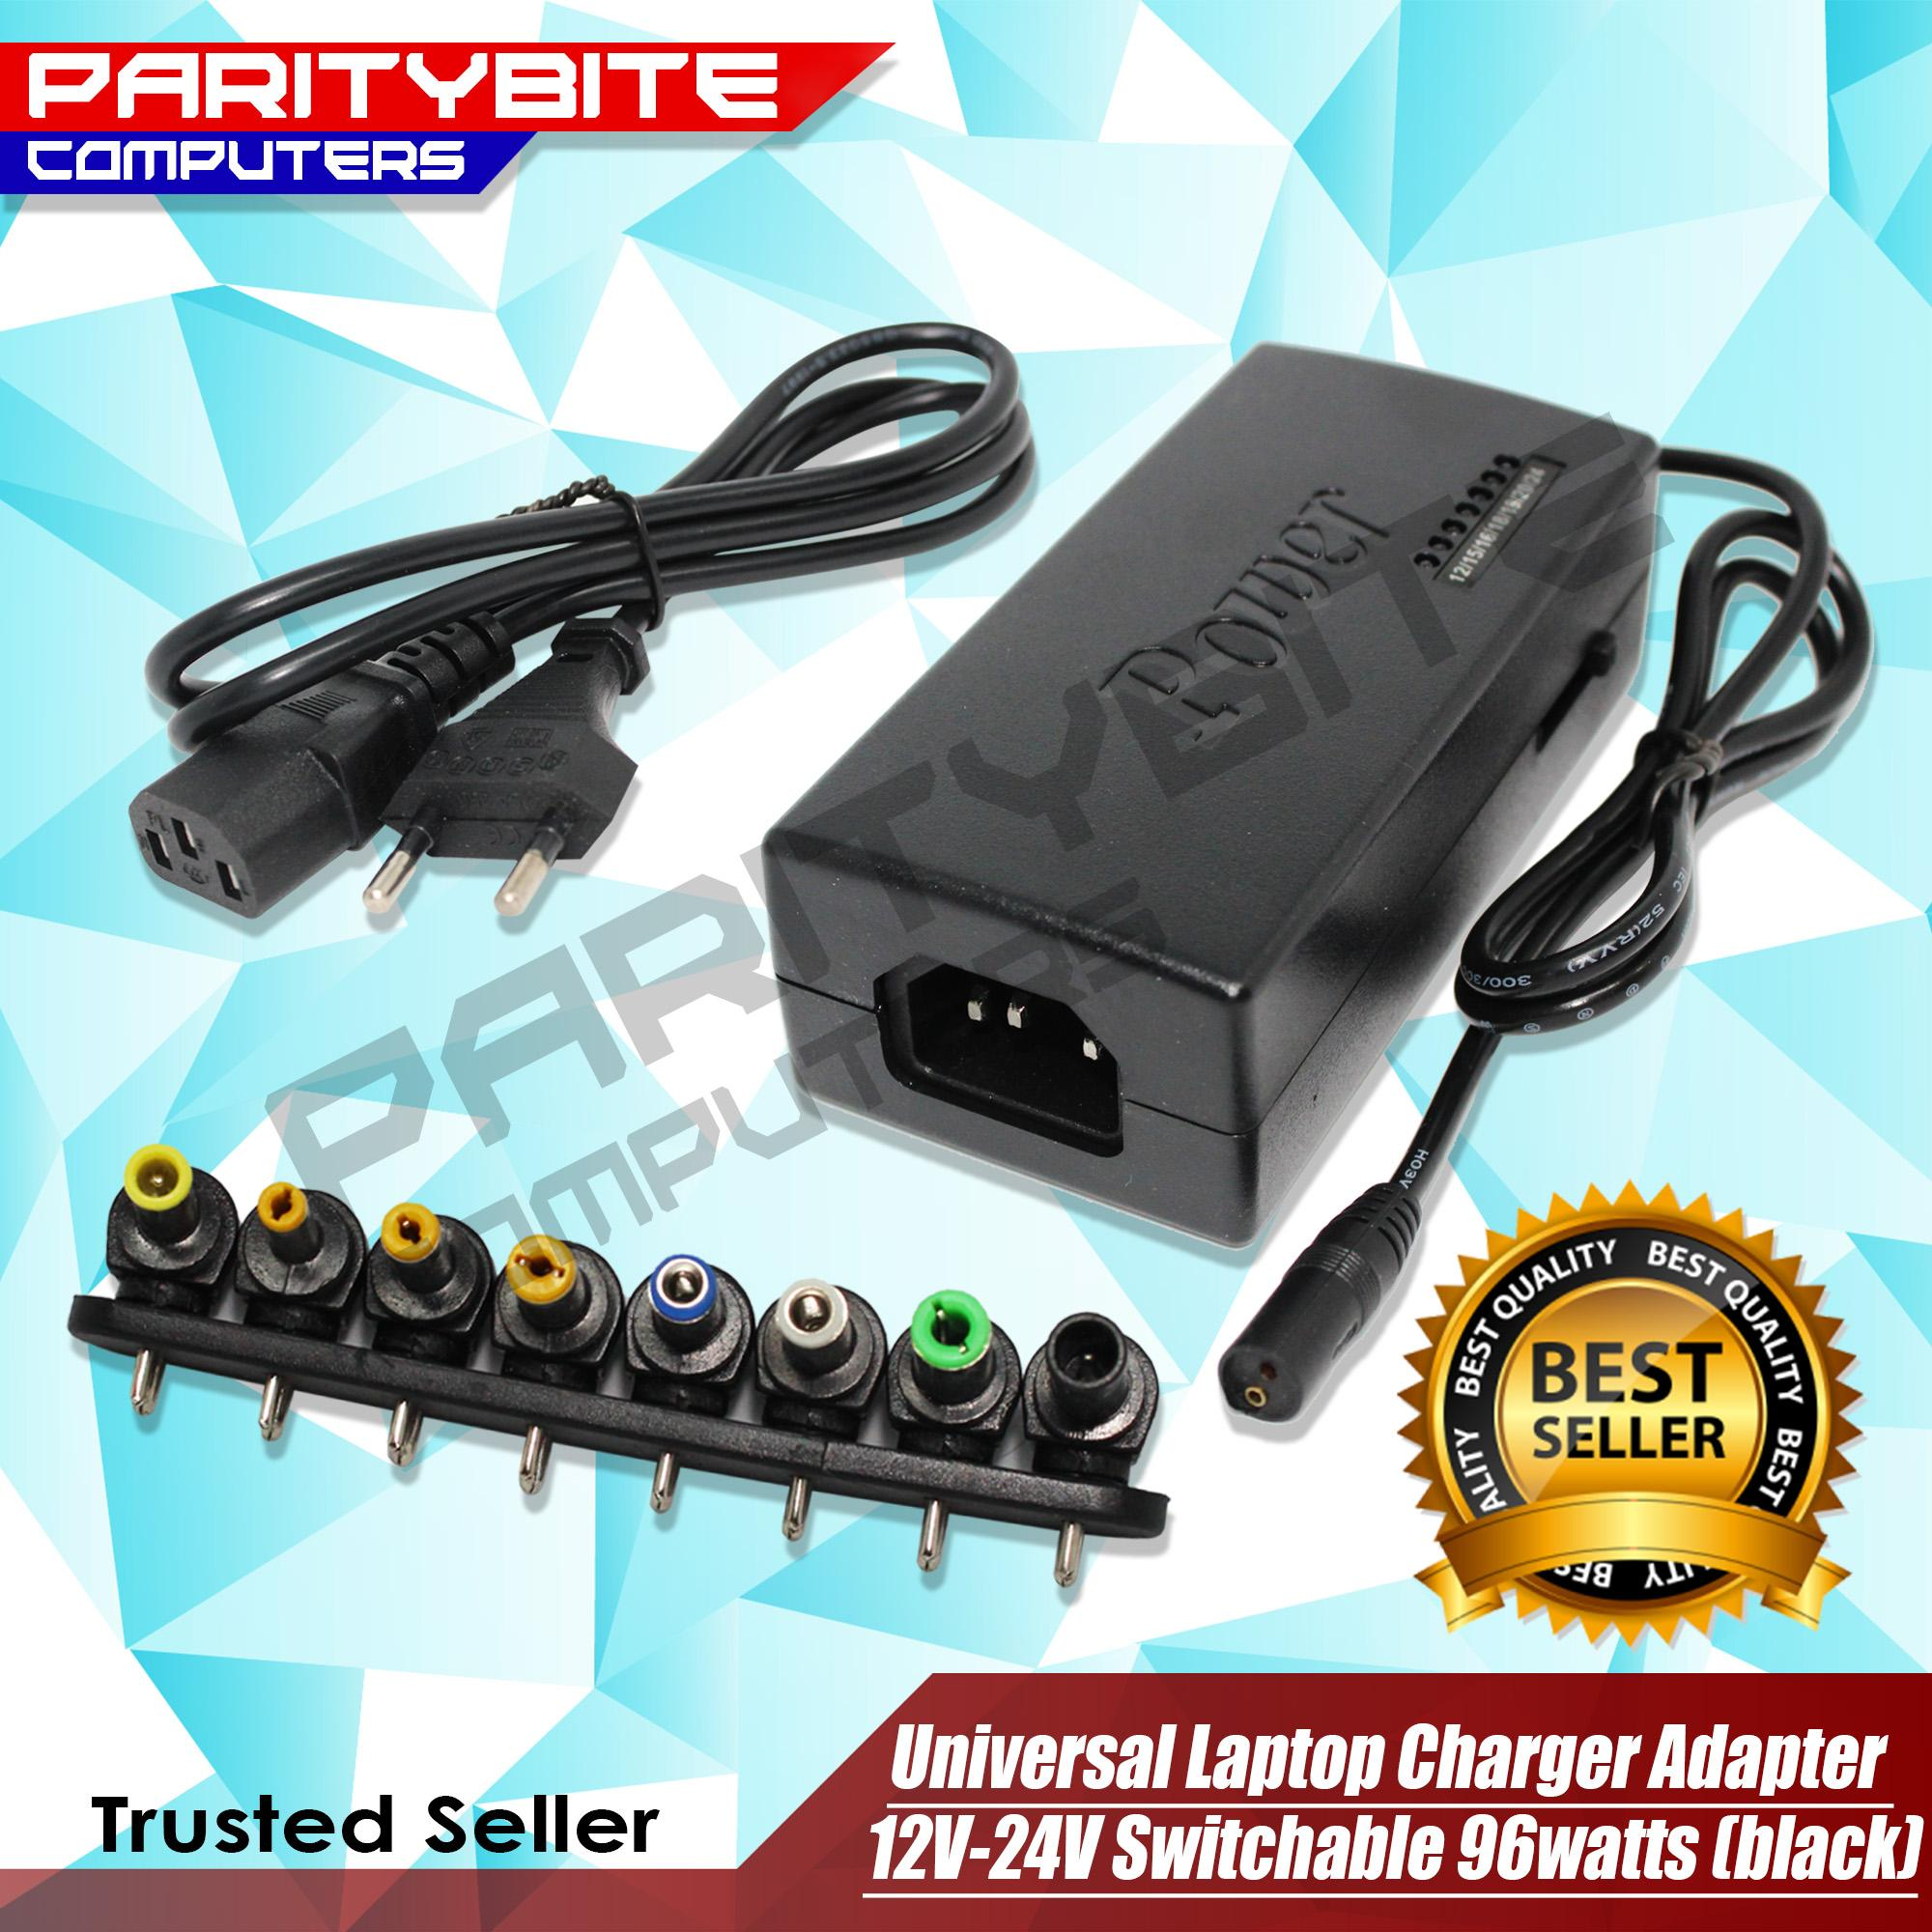 Computer Adapters For Sale Power Prices Brands Specs Connectors Switches Wire Gt Plugs Sockets Universal Laptop Charger Adapter 12v 24v Switchable 96watts Black